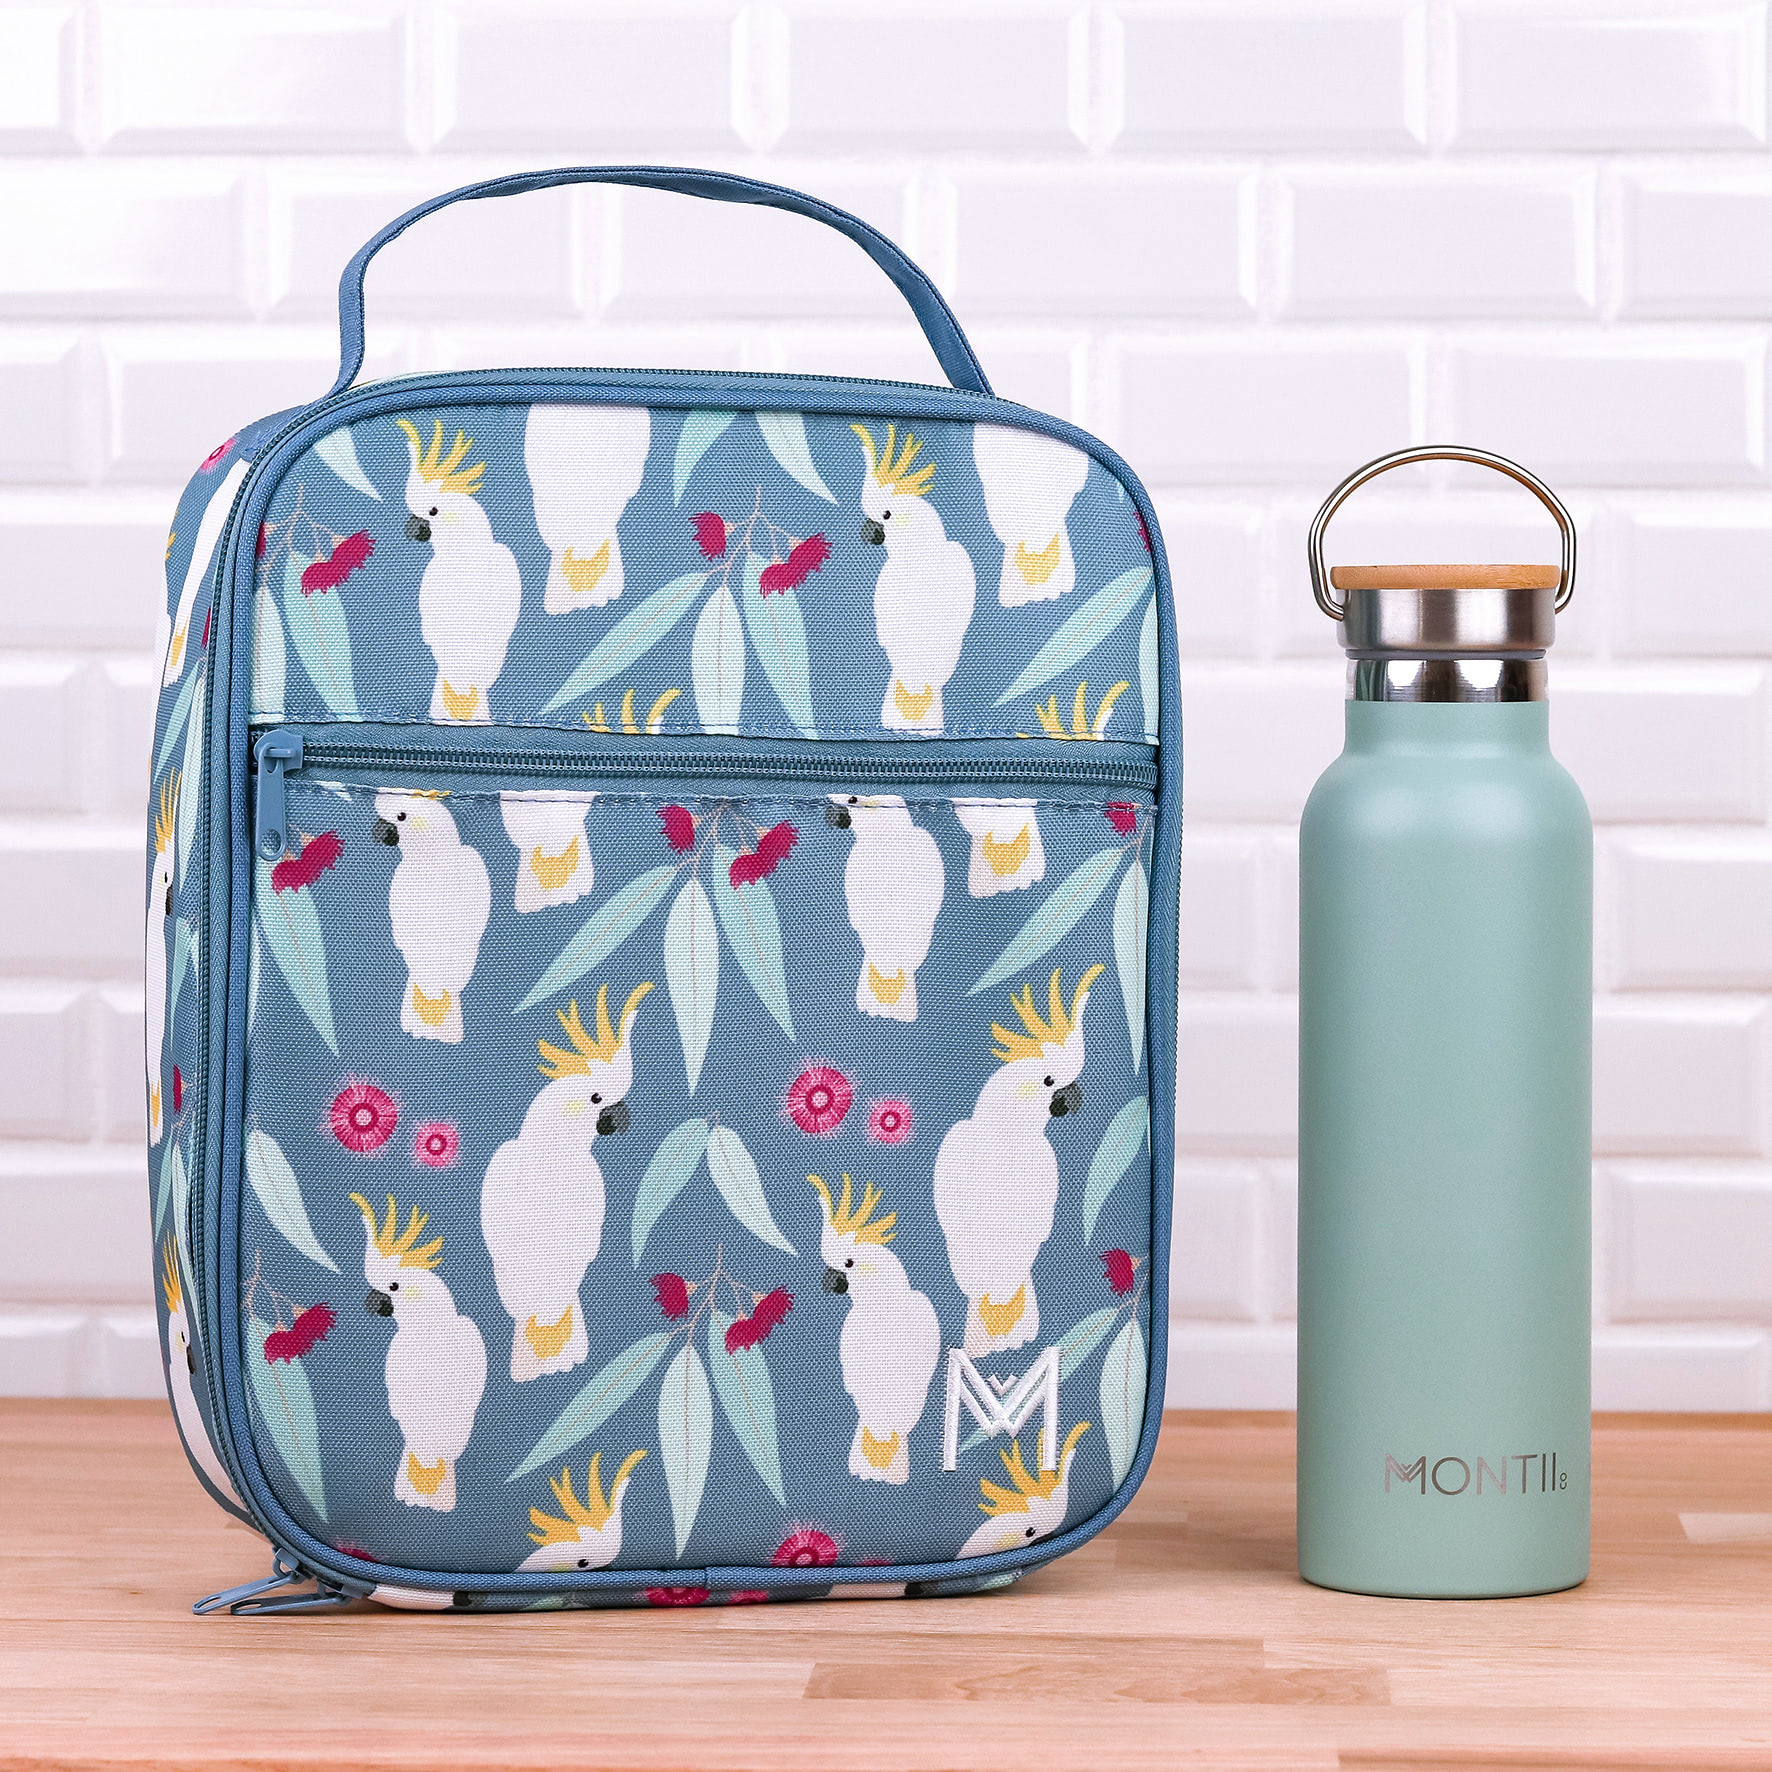 Montii insulated Lunch Bag - Cockatoo-4